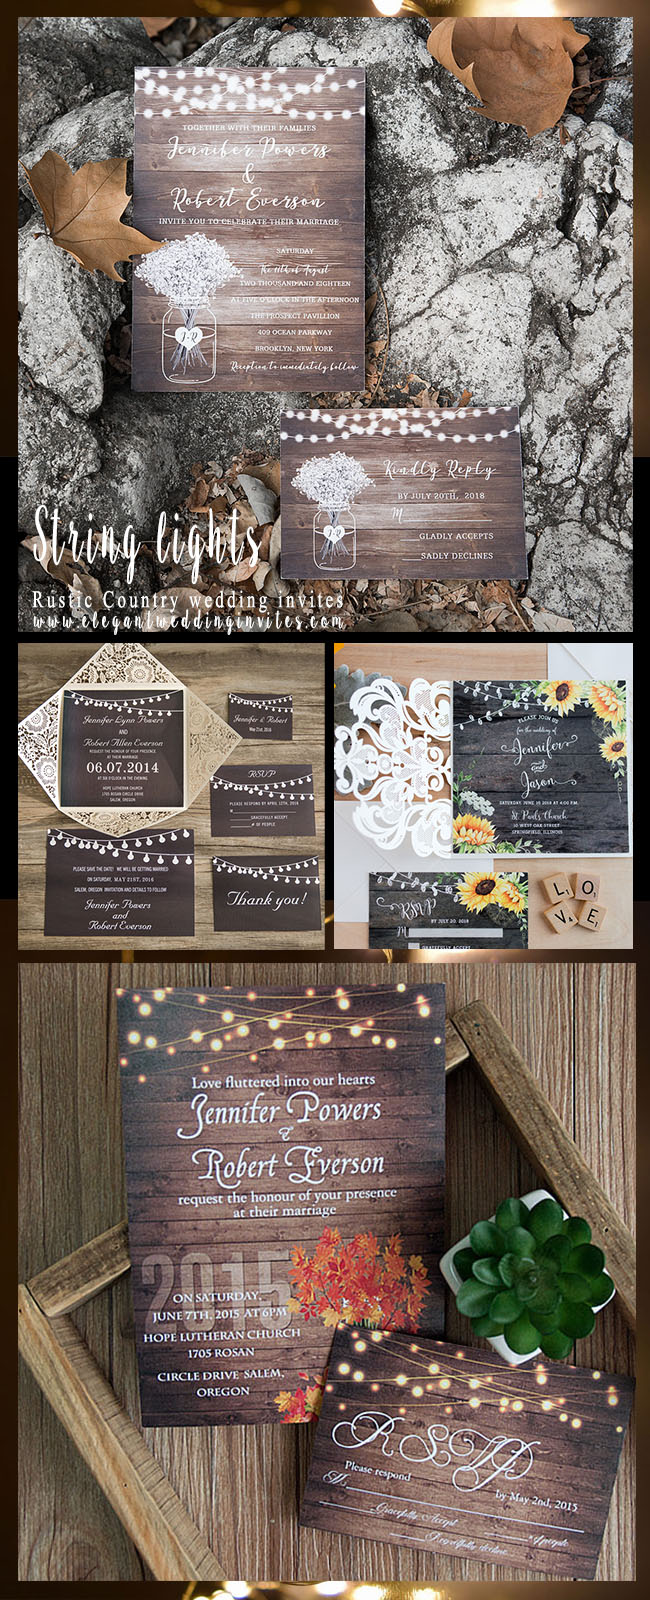 romantic string lights rustic country wedding invitations for fall weddings